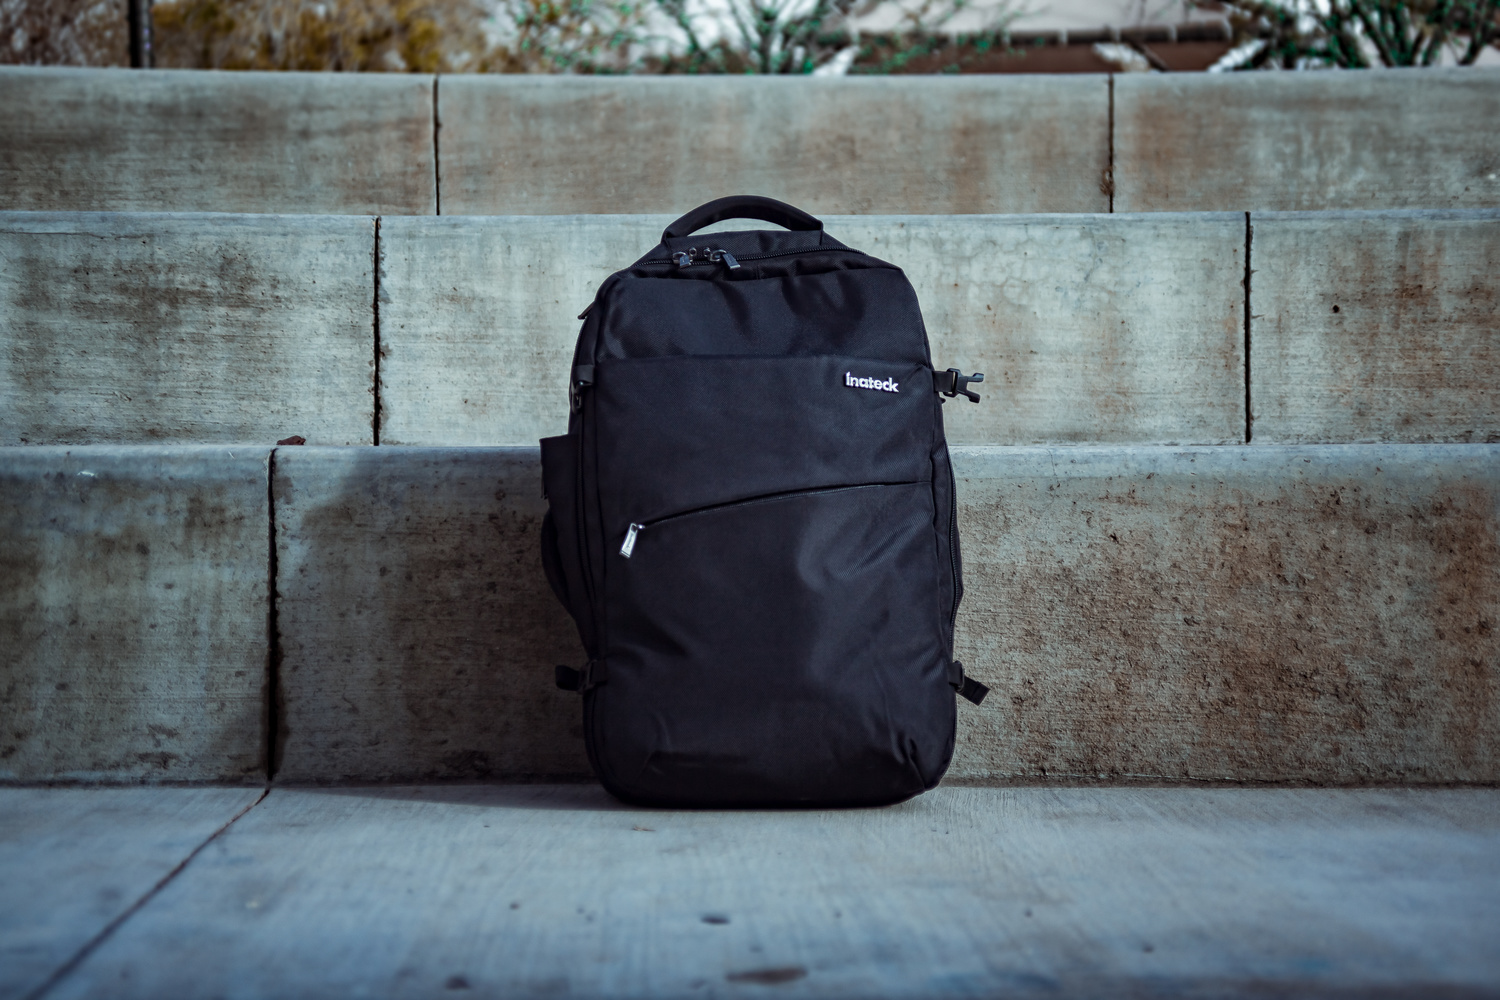 c613dfaada7b Fstoppers Reviews the Inateck 35L Backpack | Fstoppers